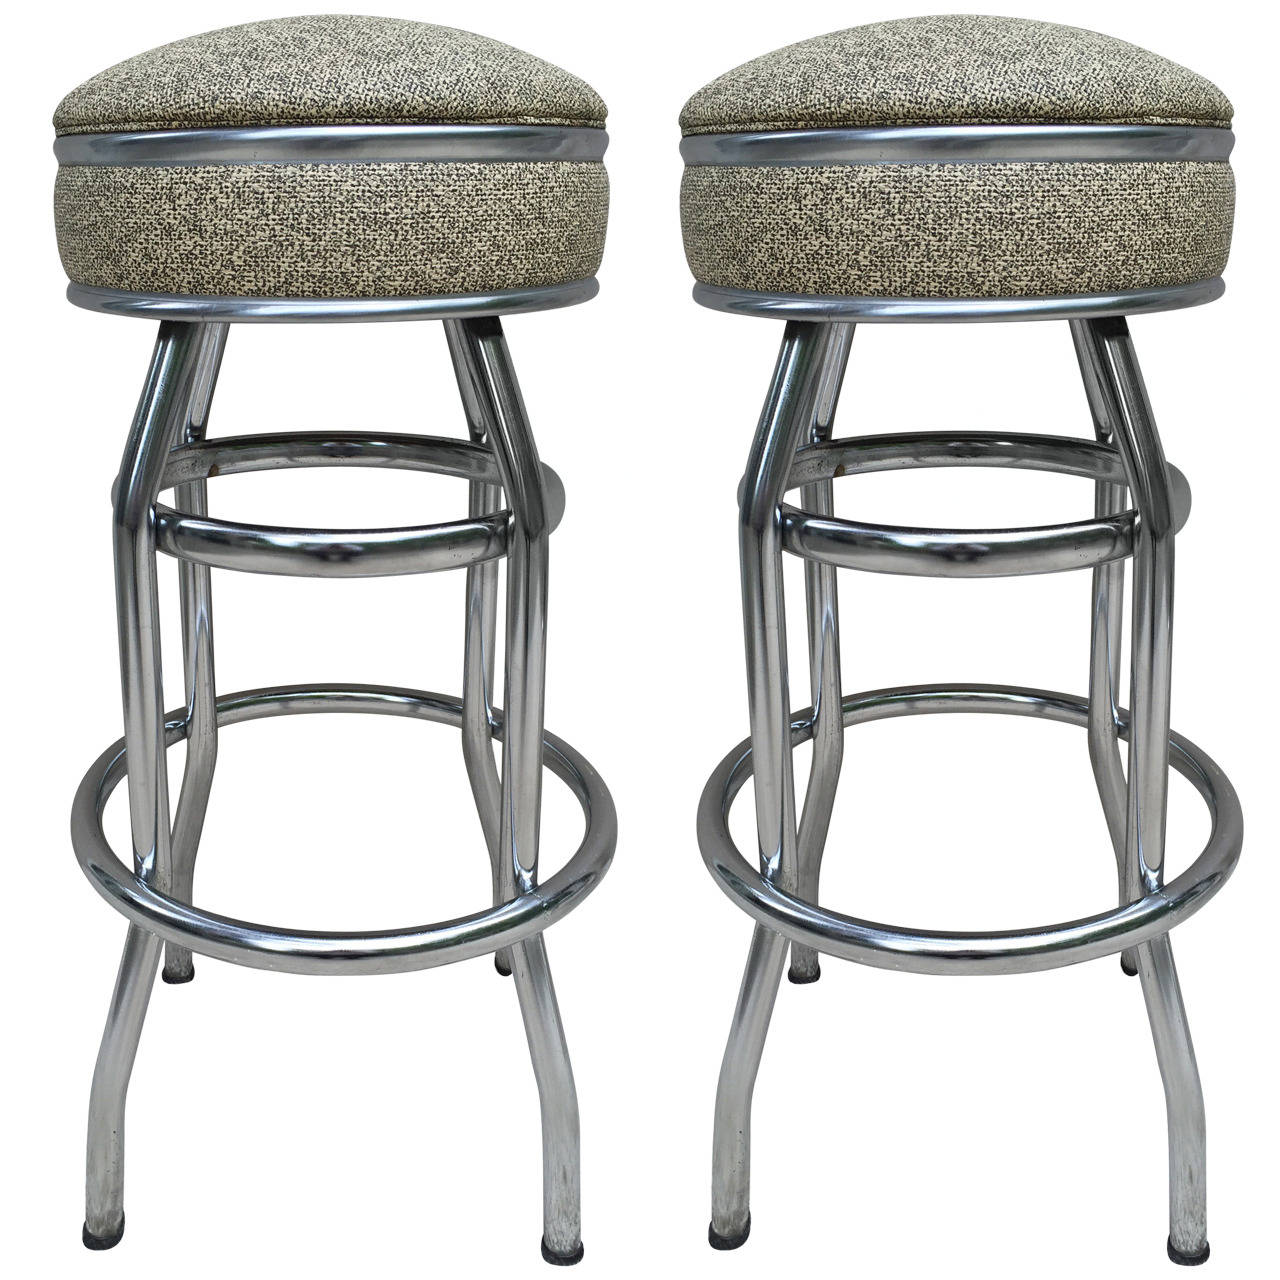 Pair art deco swivel bar stools for sale at 1stdibs for Bar stools for sale